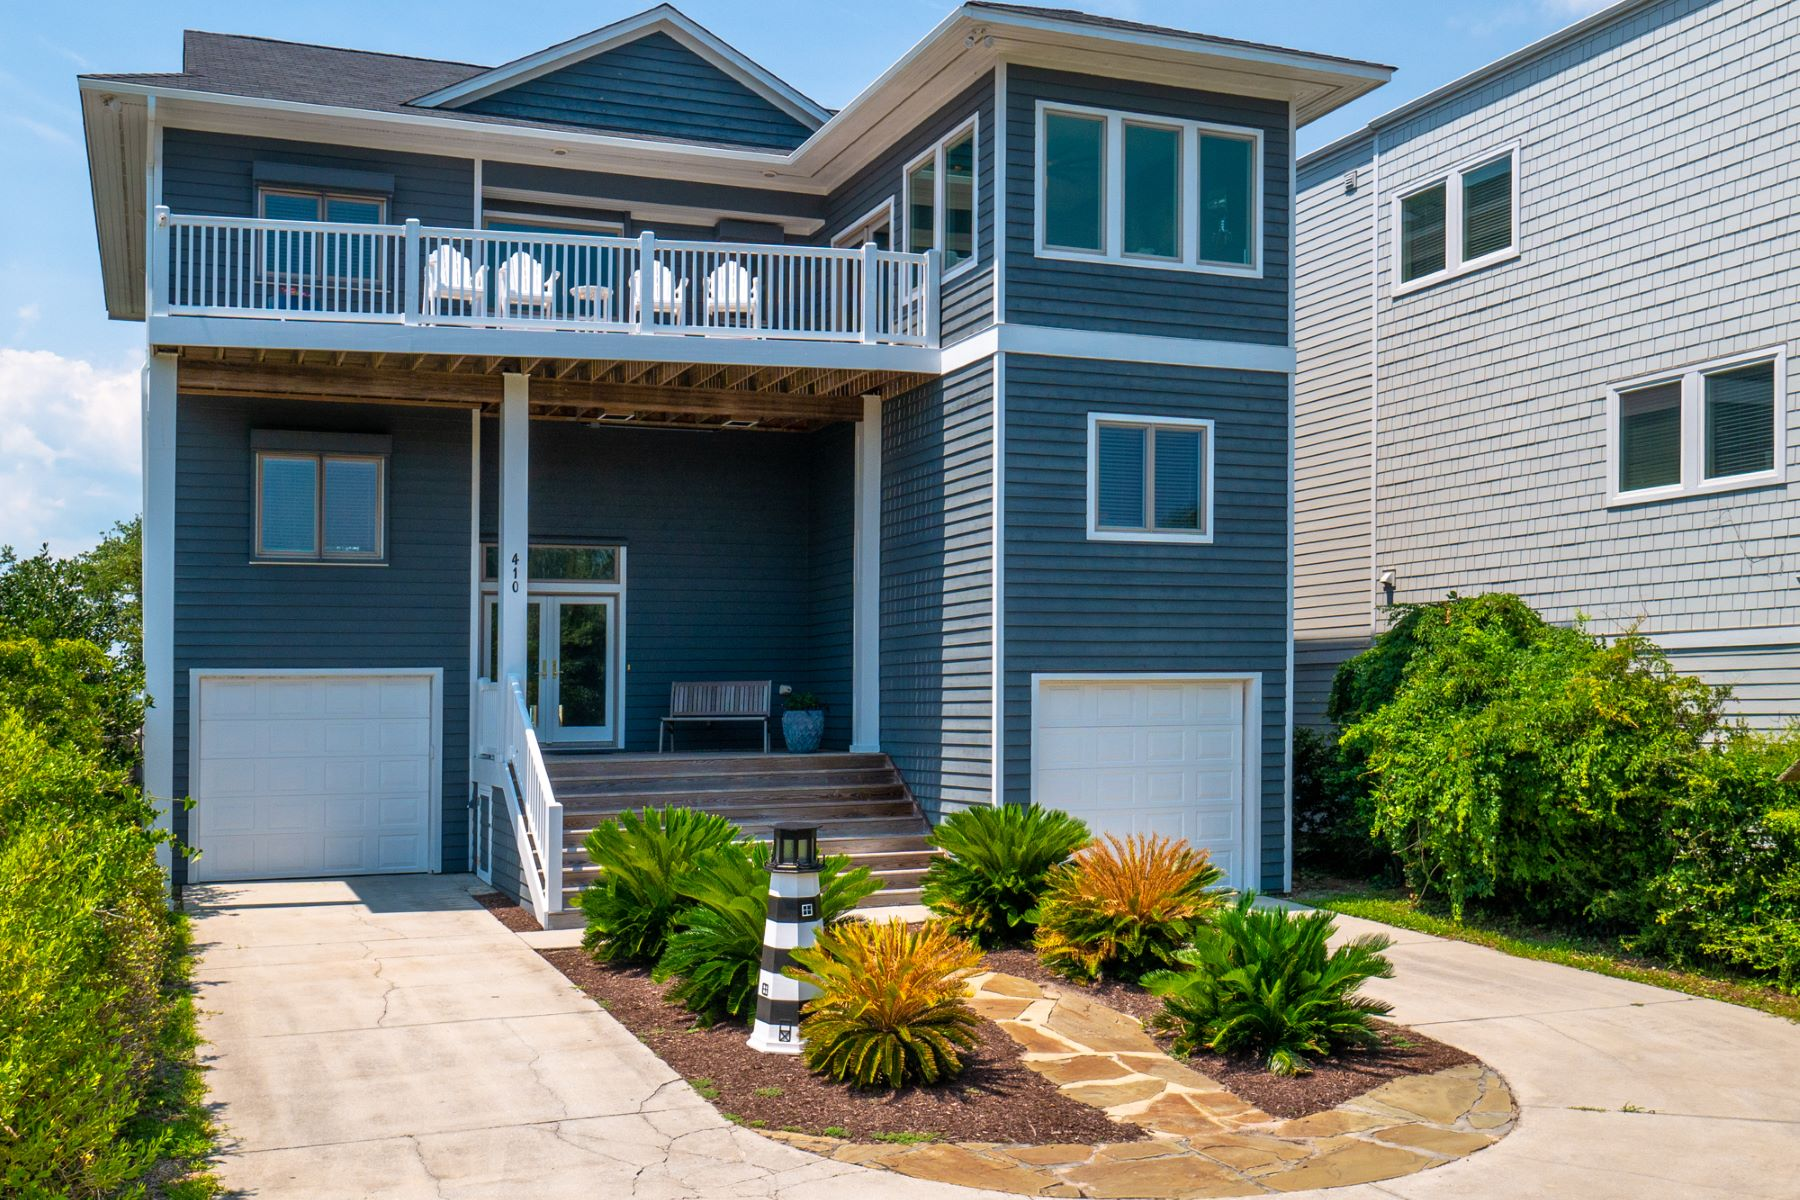 Single Family Homes for Sale at Spectacular Sound Front Home 410 C N Anderson Boulevard Topsail Beach, North Carolina 28445 United States